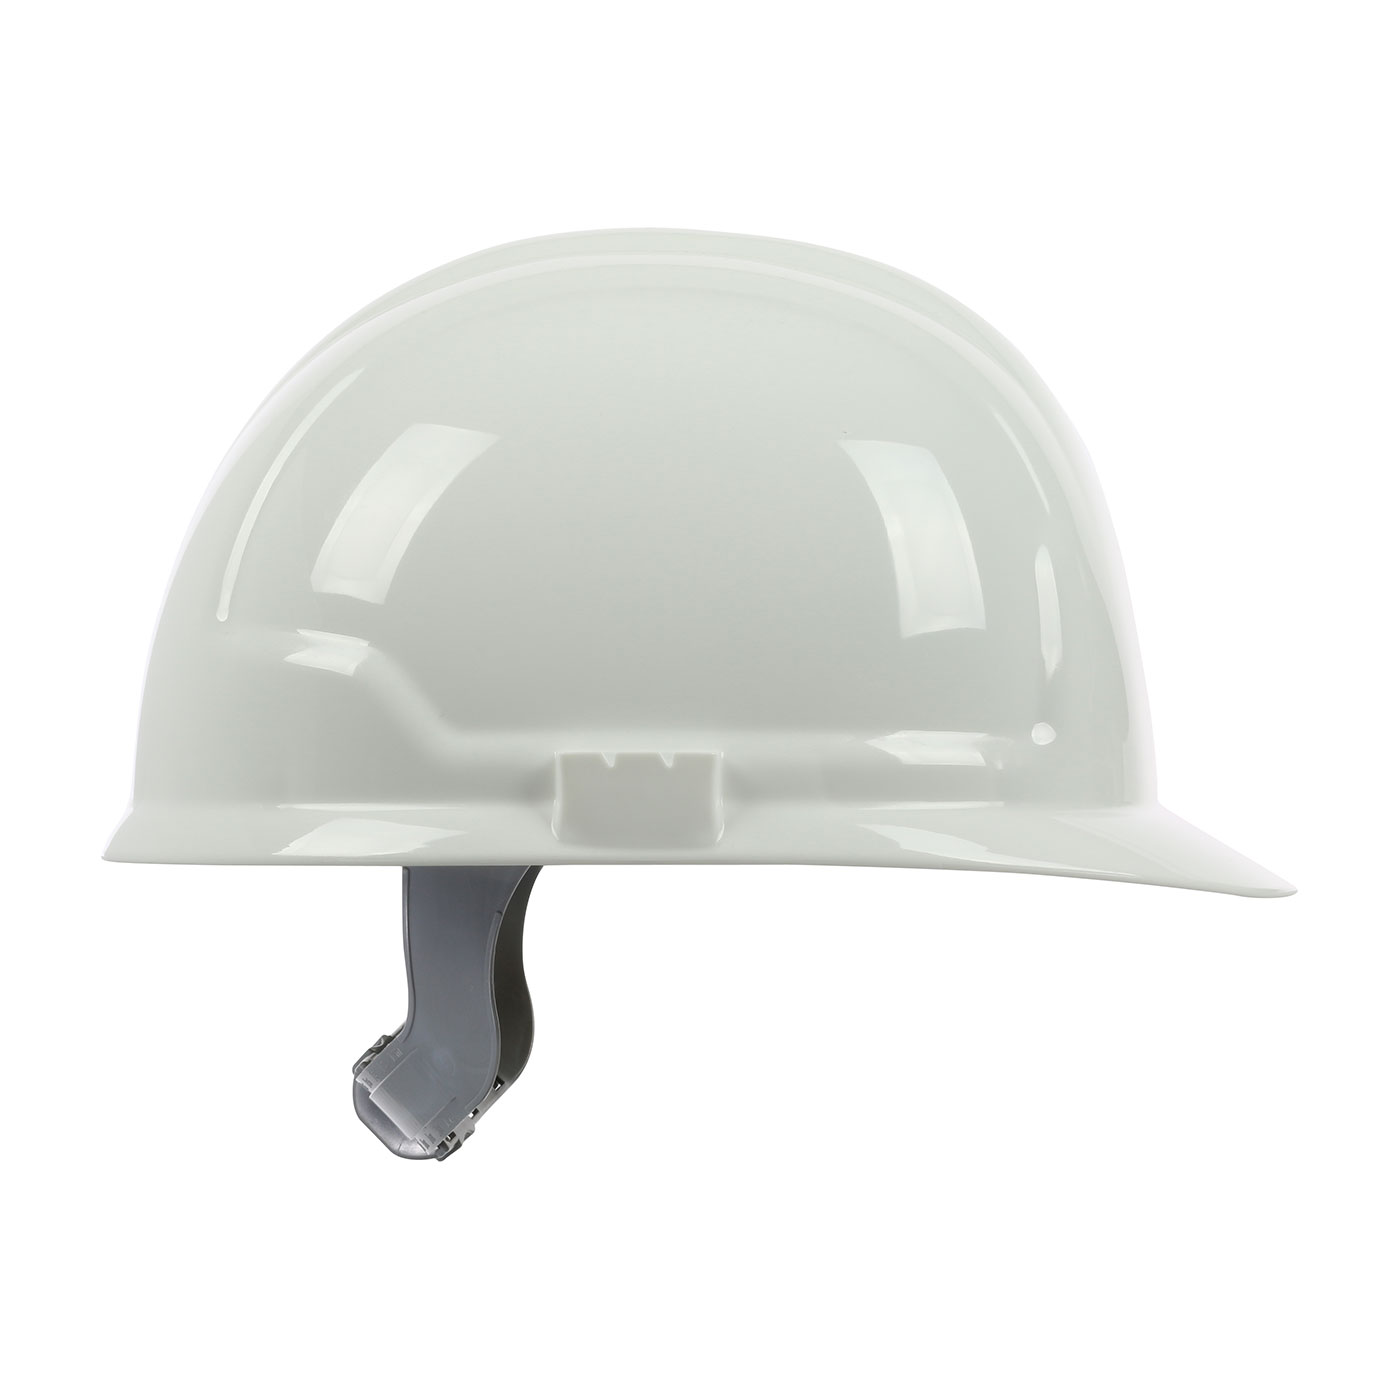 280-CS4200 PIP® 4200 Series Cap Style Hard Hat with HDPE Shell, 4-Point Polyester Suspension and Slip Ratchet Adjustment - White